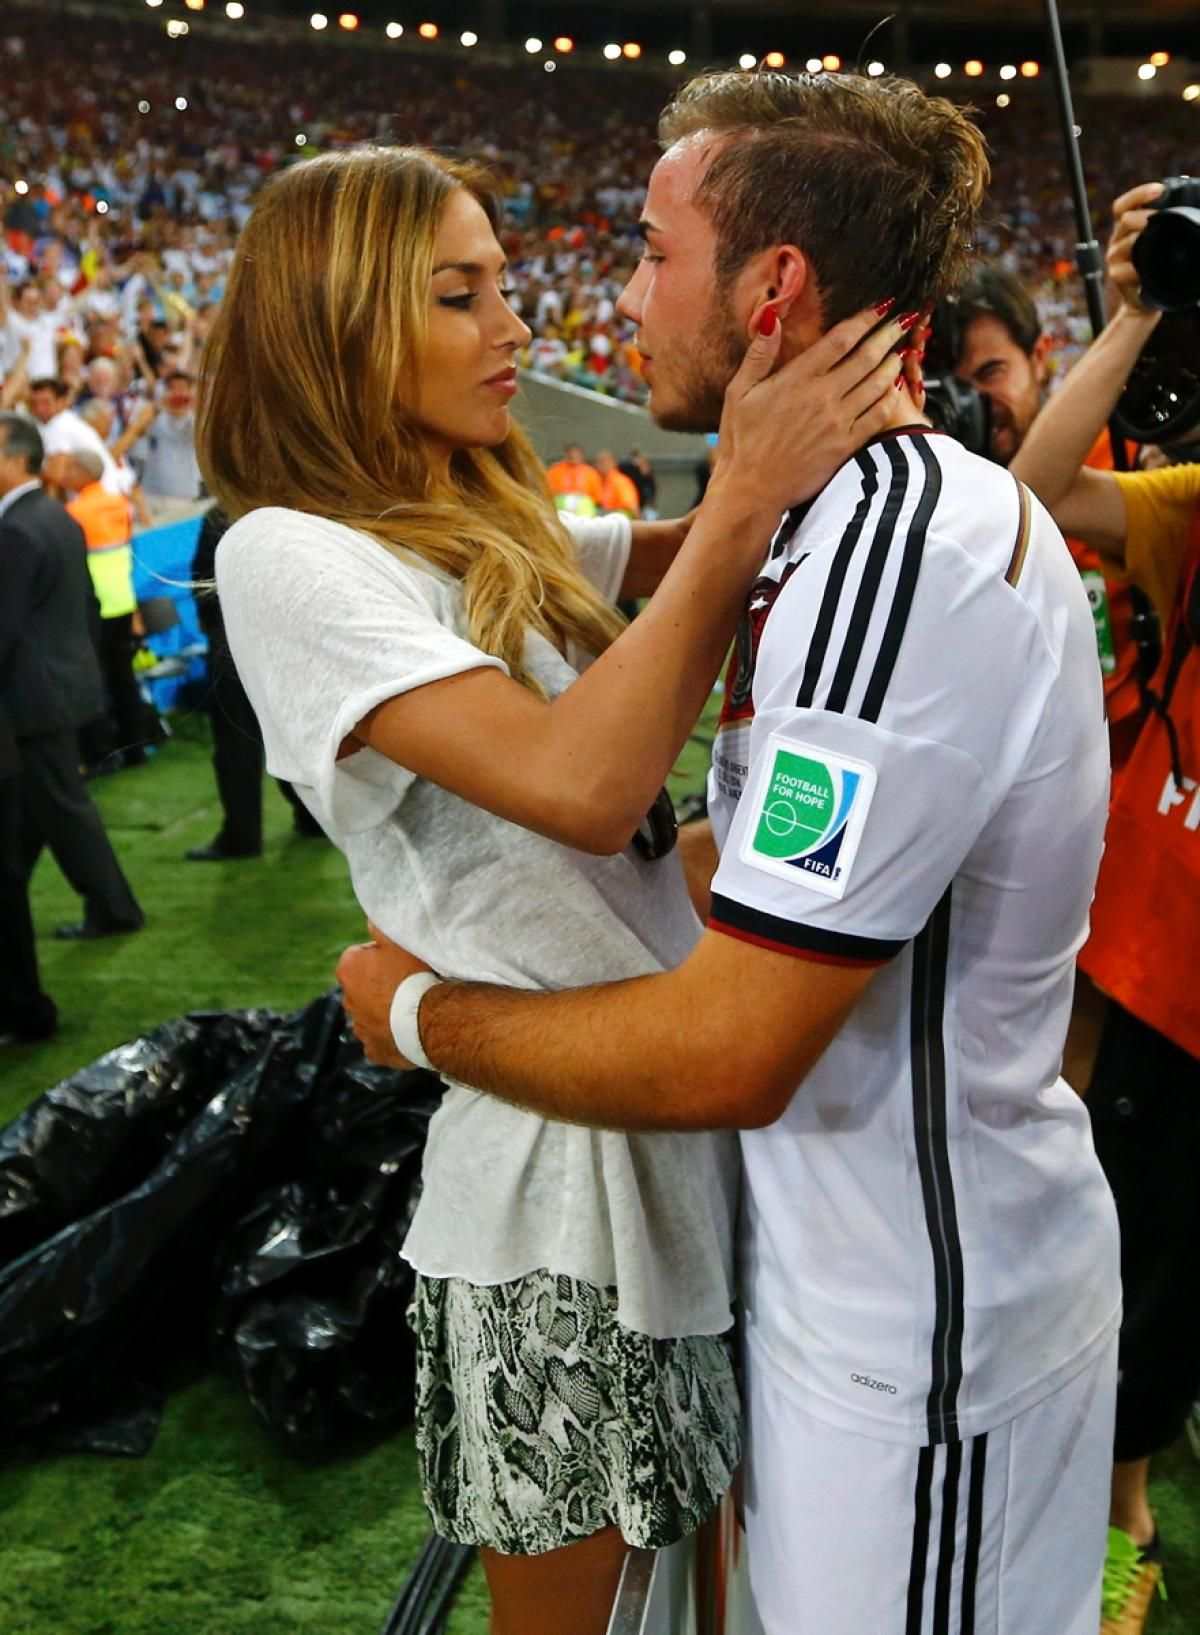 Germany S Mario Gotze Who Scored The Game Winning Goal Kept His Eyes On The Prize And We Re Not Tal Soccer Couples Soccer Girlfriend Soccer Relationships